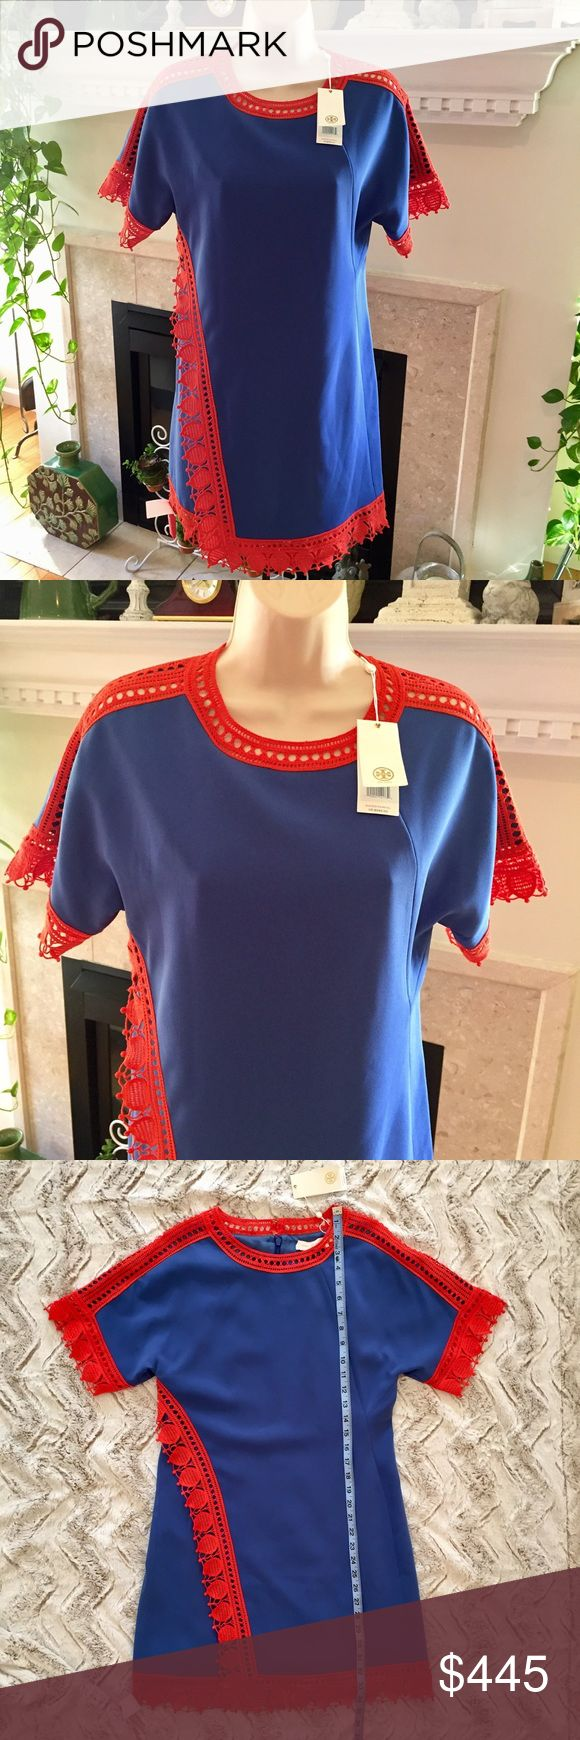 TORY BURCH SHIFT DRESS BLUE ORANGE SIZE 2👗 NEW WITH TAGS TORY BURCH shift dress.  Size 2. 100% polyester.  Blue with dark orange scalloped trim.  See pictures for measurements.  Suggested Retail Price is $595.00.  NCMCOLLECTIONS 💐👗 Tory Burch Dresses